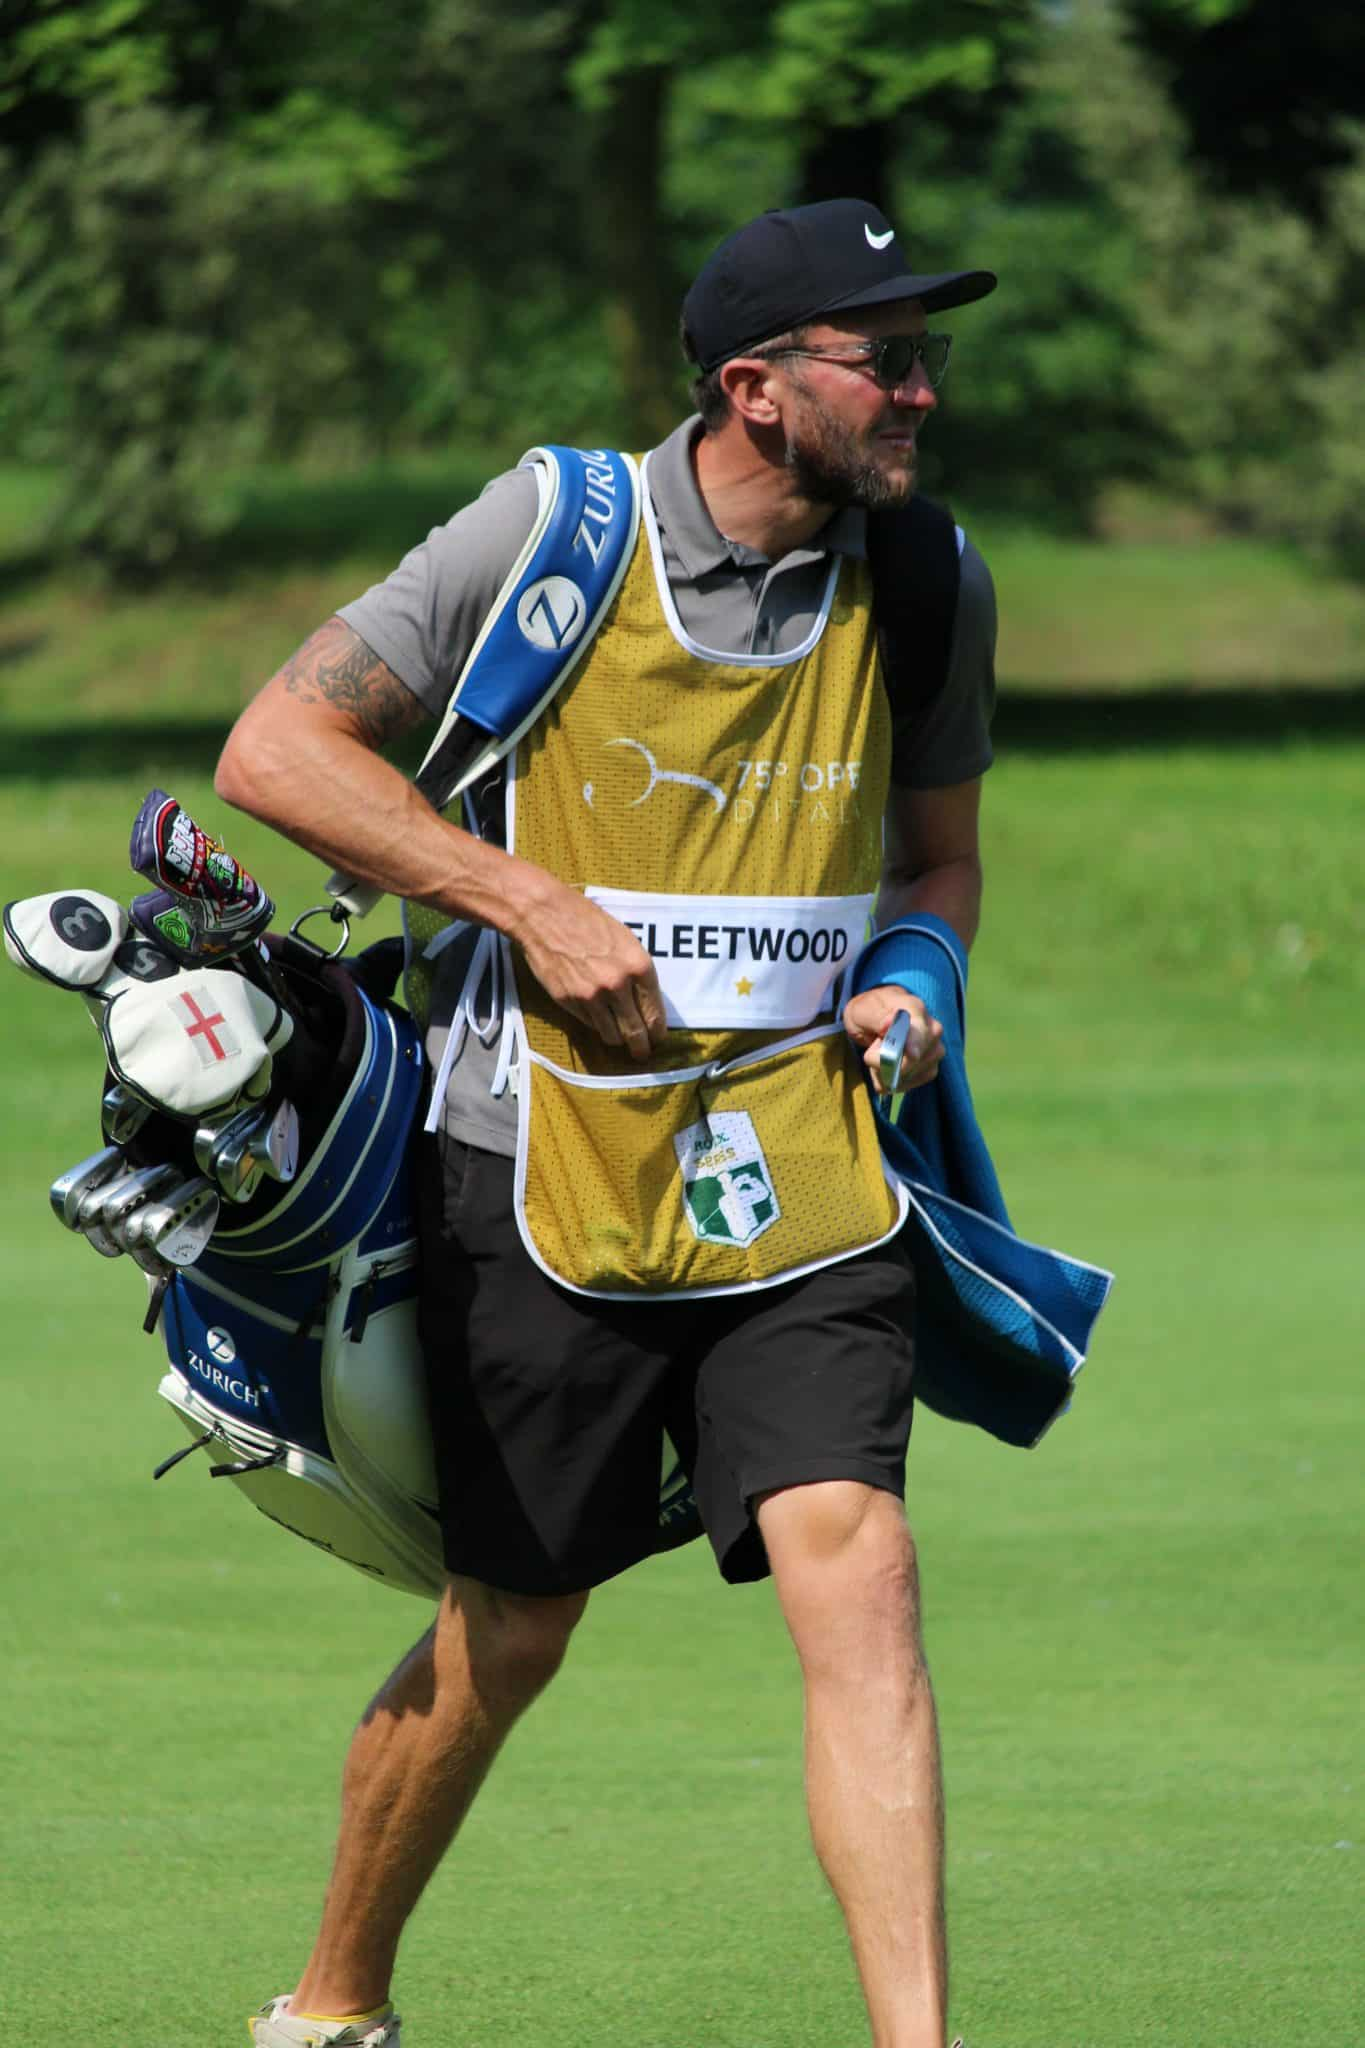 Tommy Fleetwood's caddie